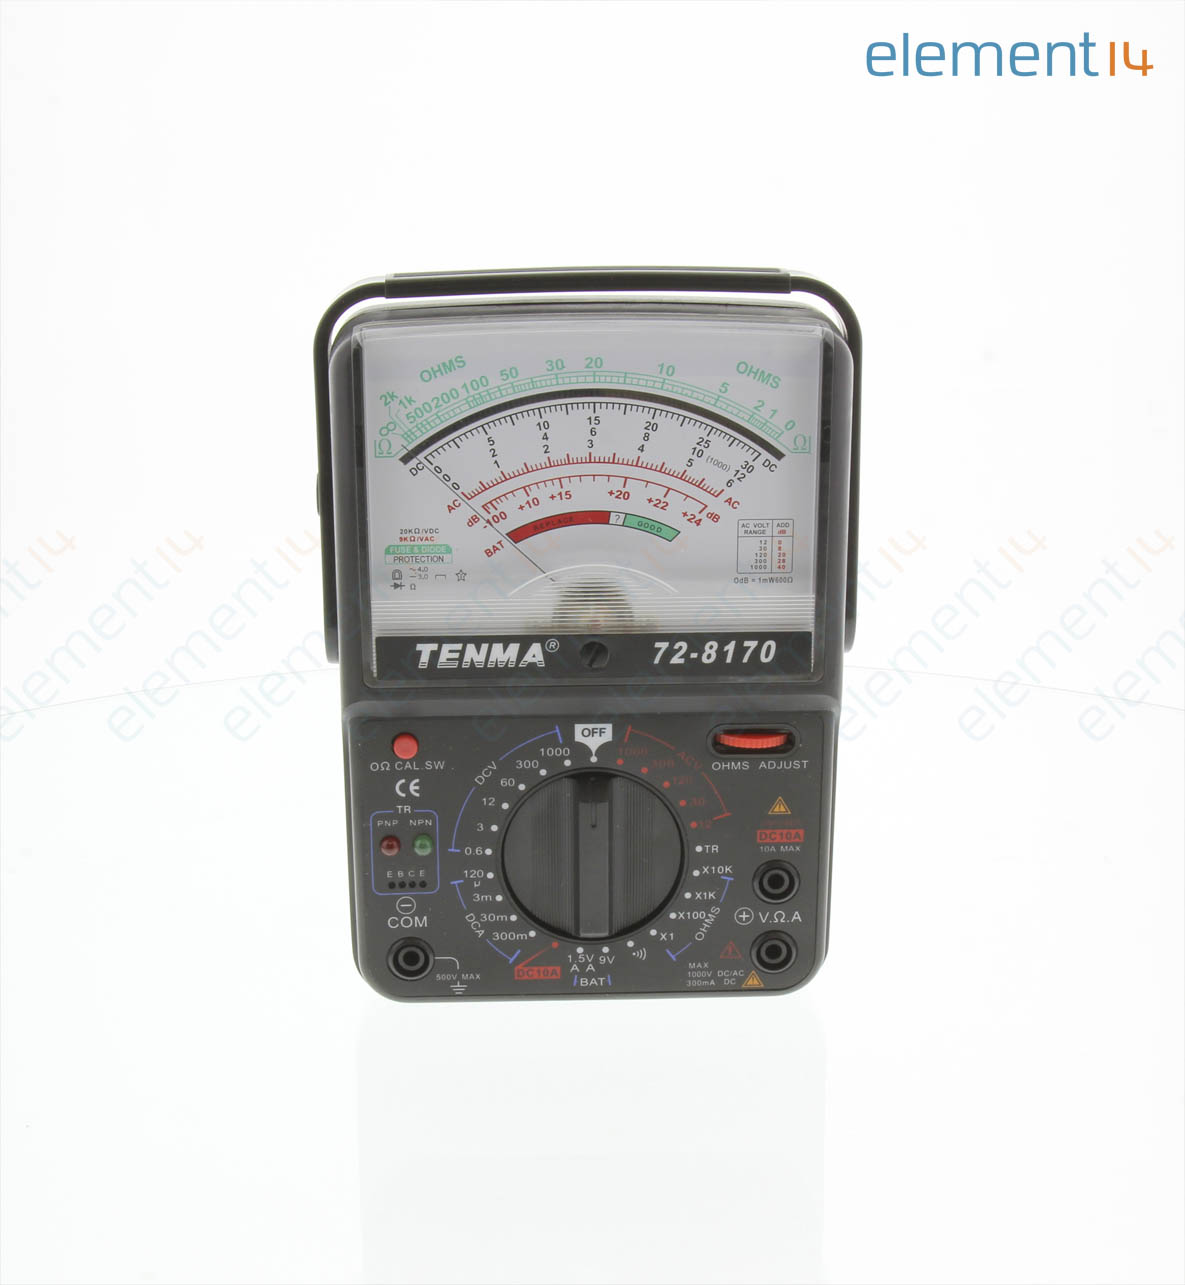 72 8170 Tenma Analog Multimeter 06v To 1000v 12v Quot Stereo Phone Plug Further Digital Circuit Diagram 1ohm 10kohm 120a 10a Manual